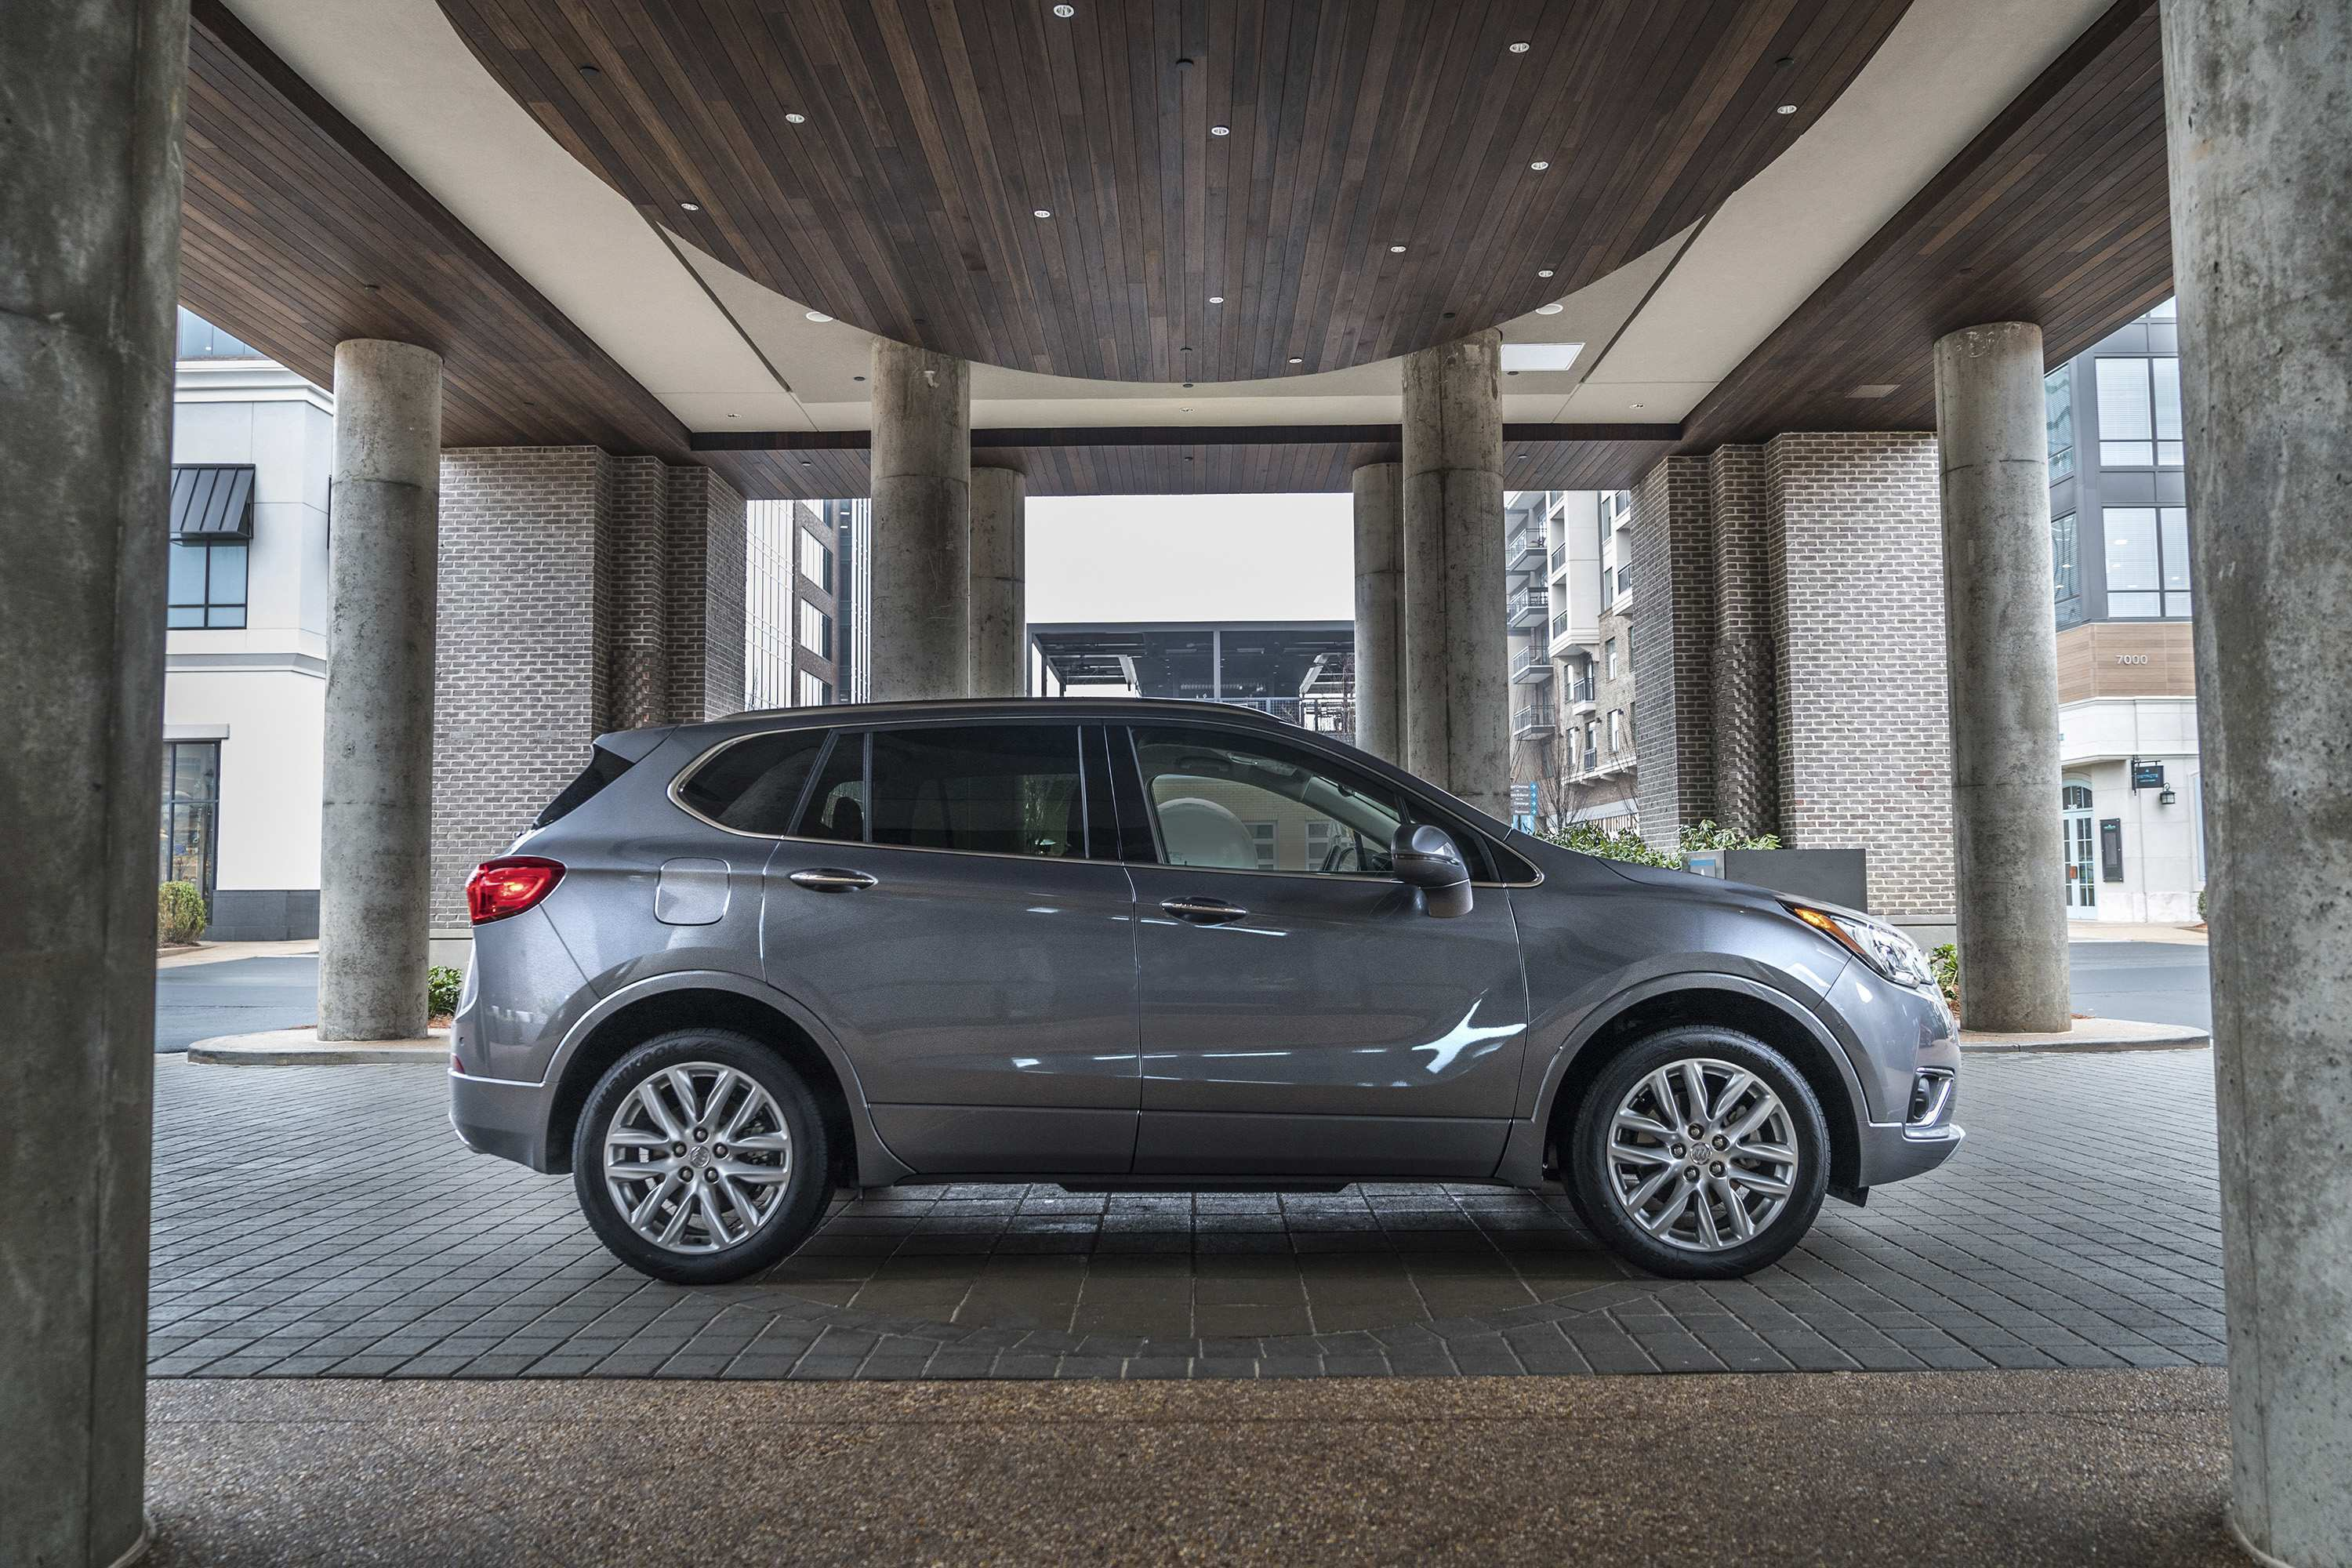 18 All New Best 2019 Buick Envision Preferred Release Date Rumors for Best 2019 Buick Envision Preferred Release Date